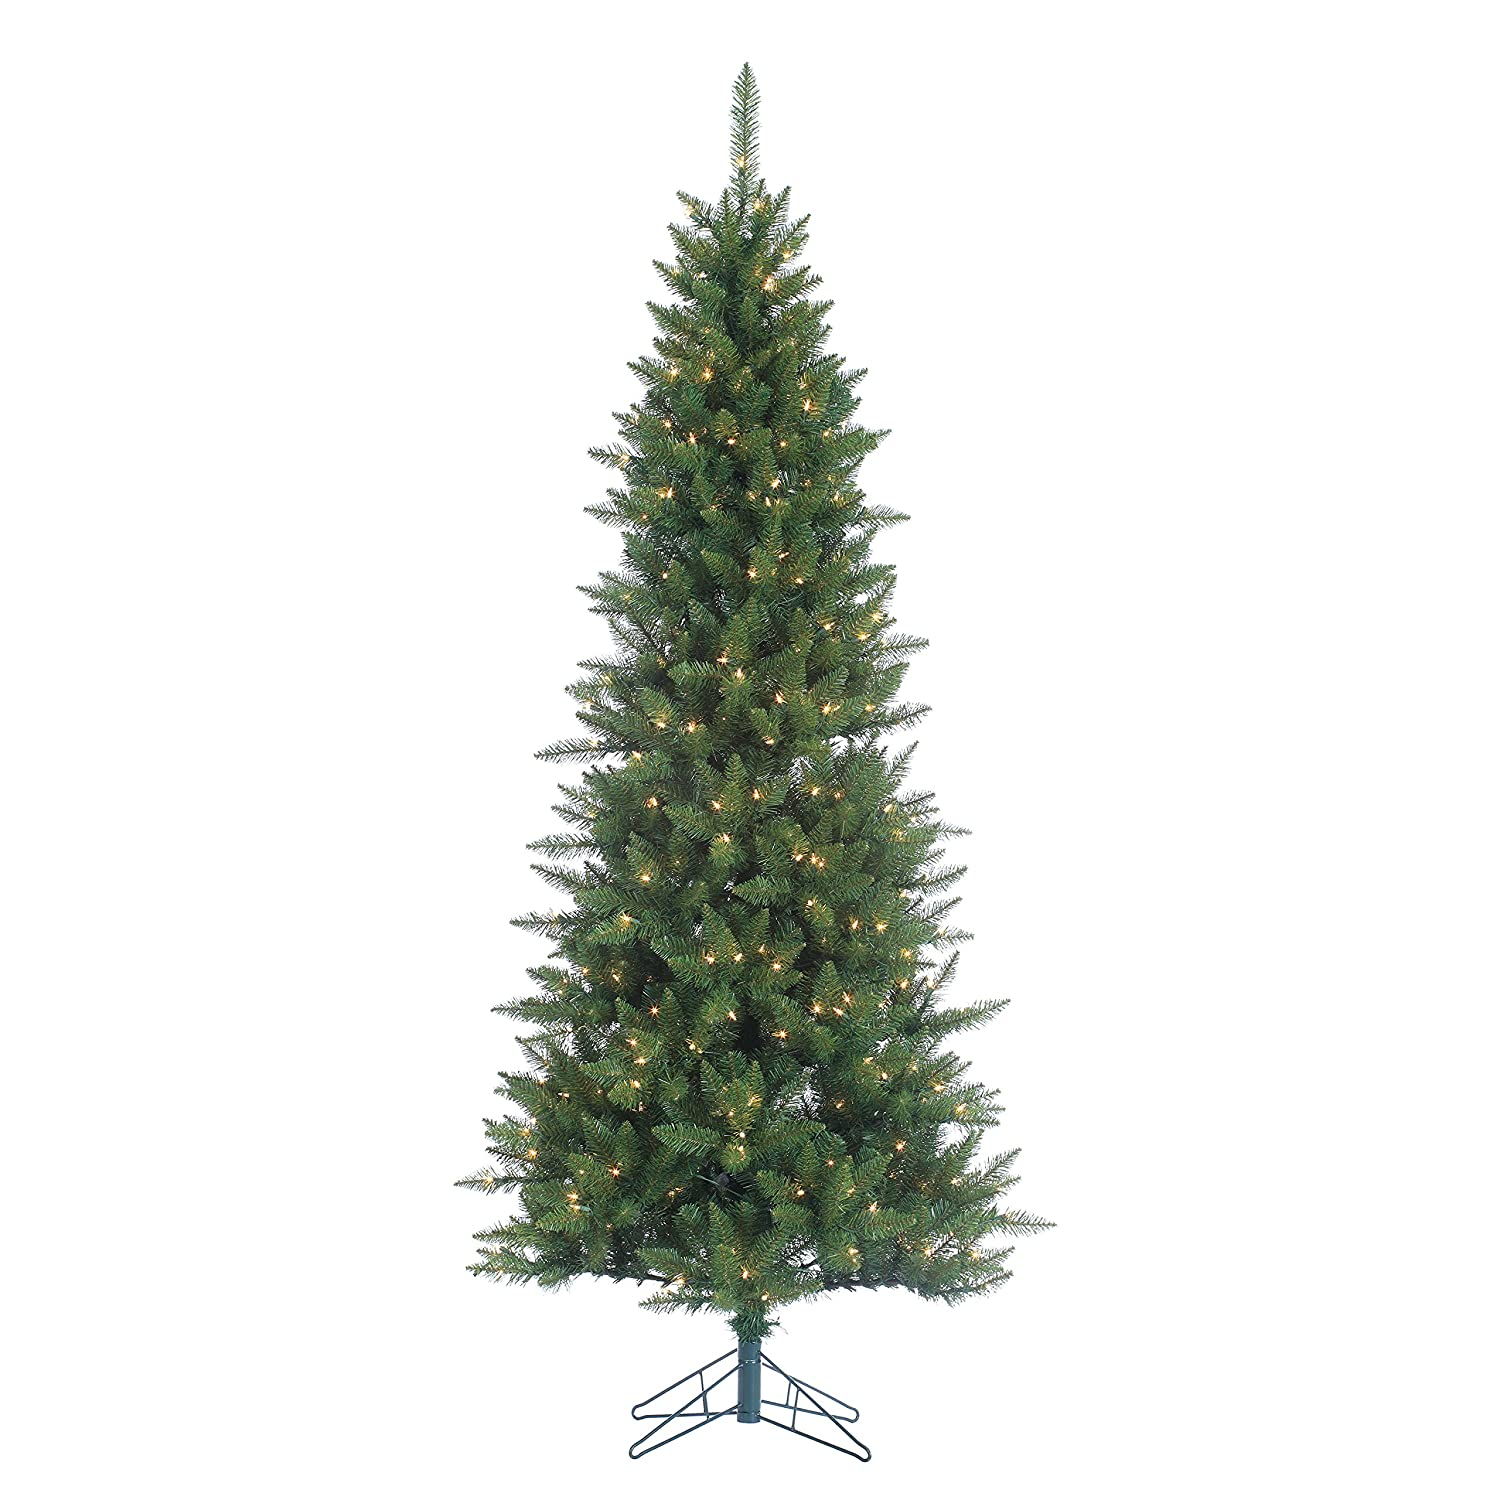 sterling tree company 75 narrow nordic fir artificial christmas tree 90 l x - Sterling Christmas Trees